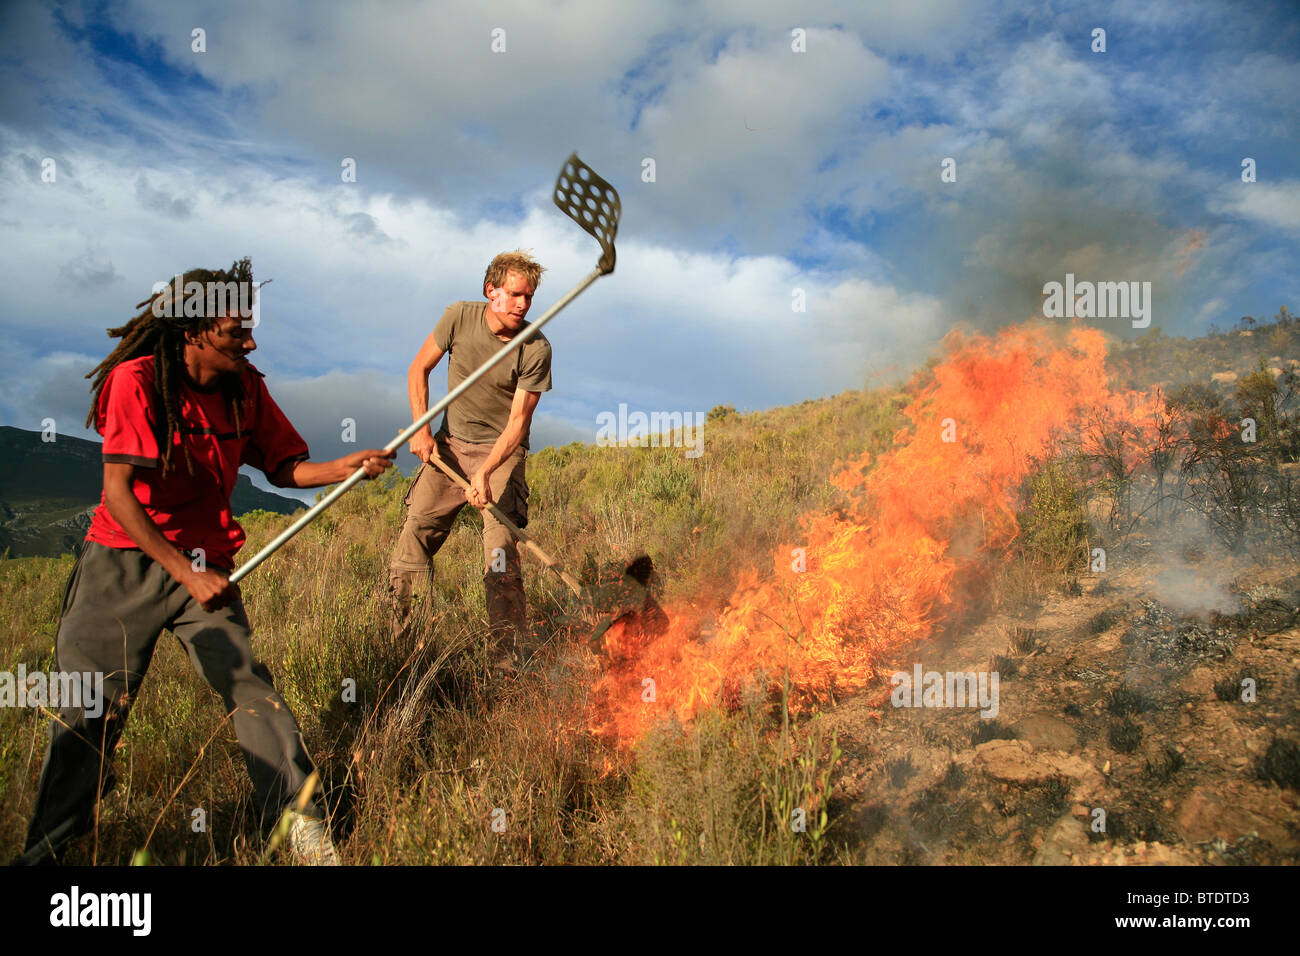 Fire fighters beating out a mountain fire near Greyton - Stock Image